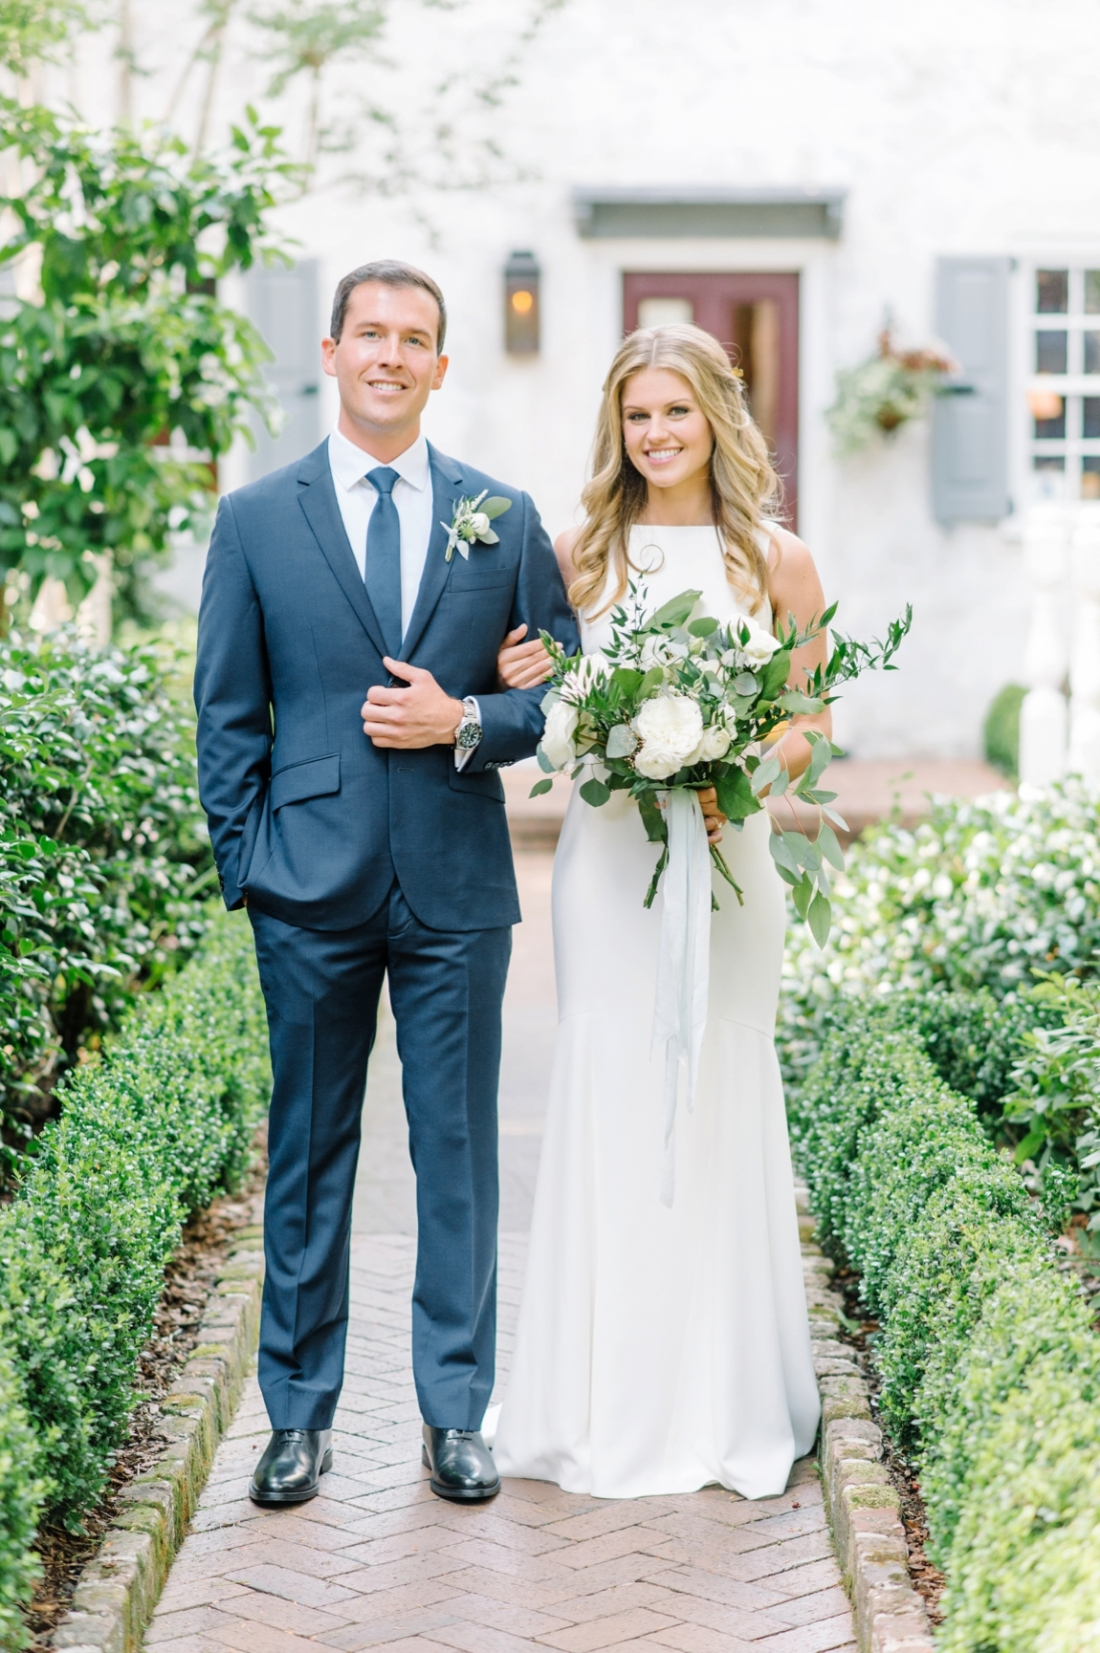 Legare Waring House elopement in Charleston, SC wedding photography by Aaron and Jillian Photography_0035